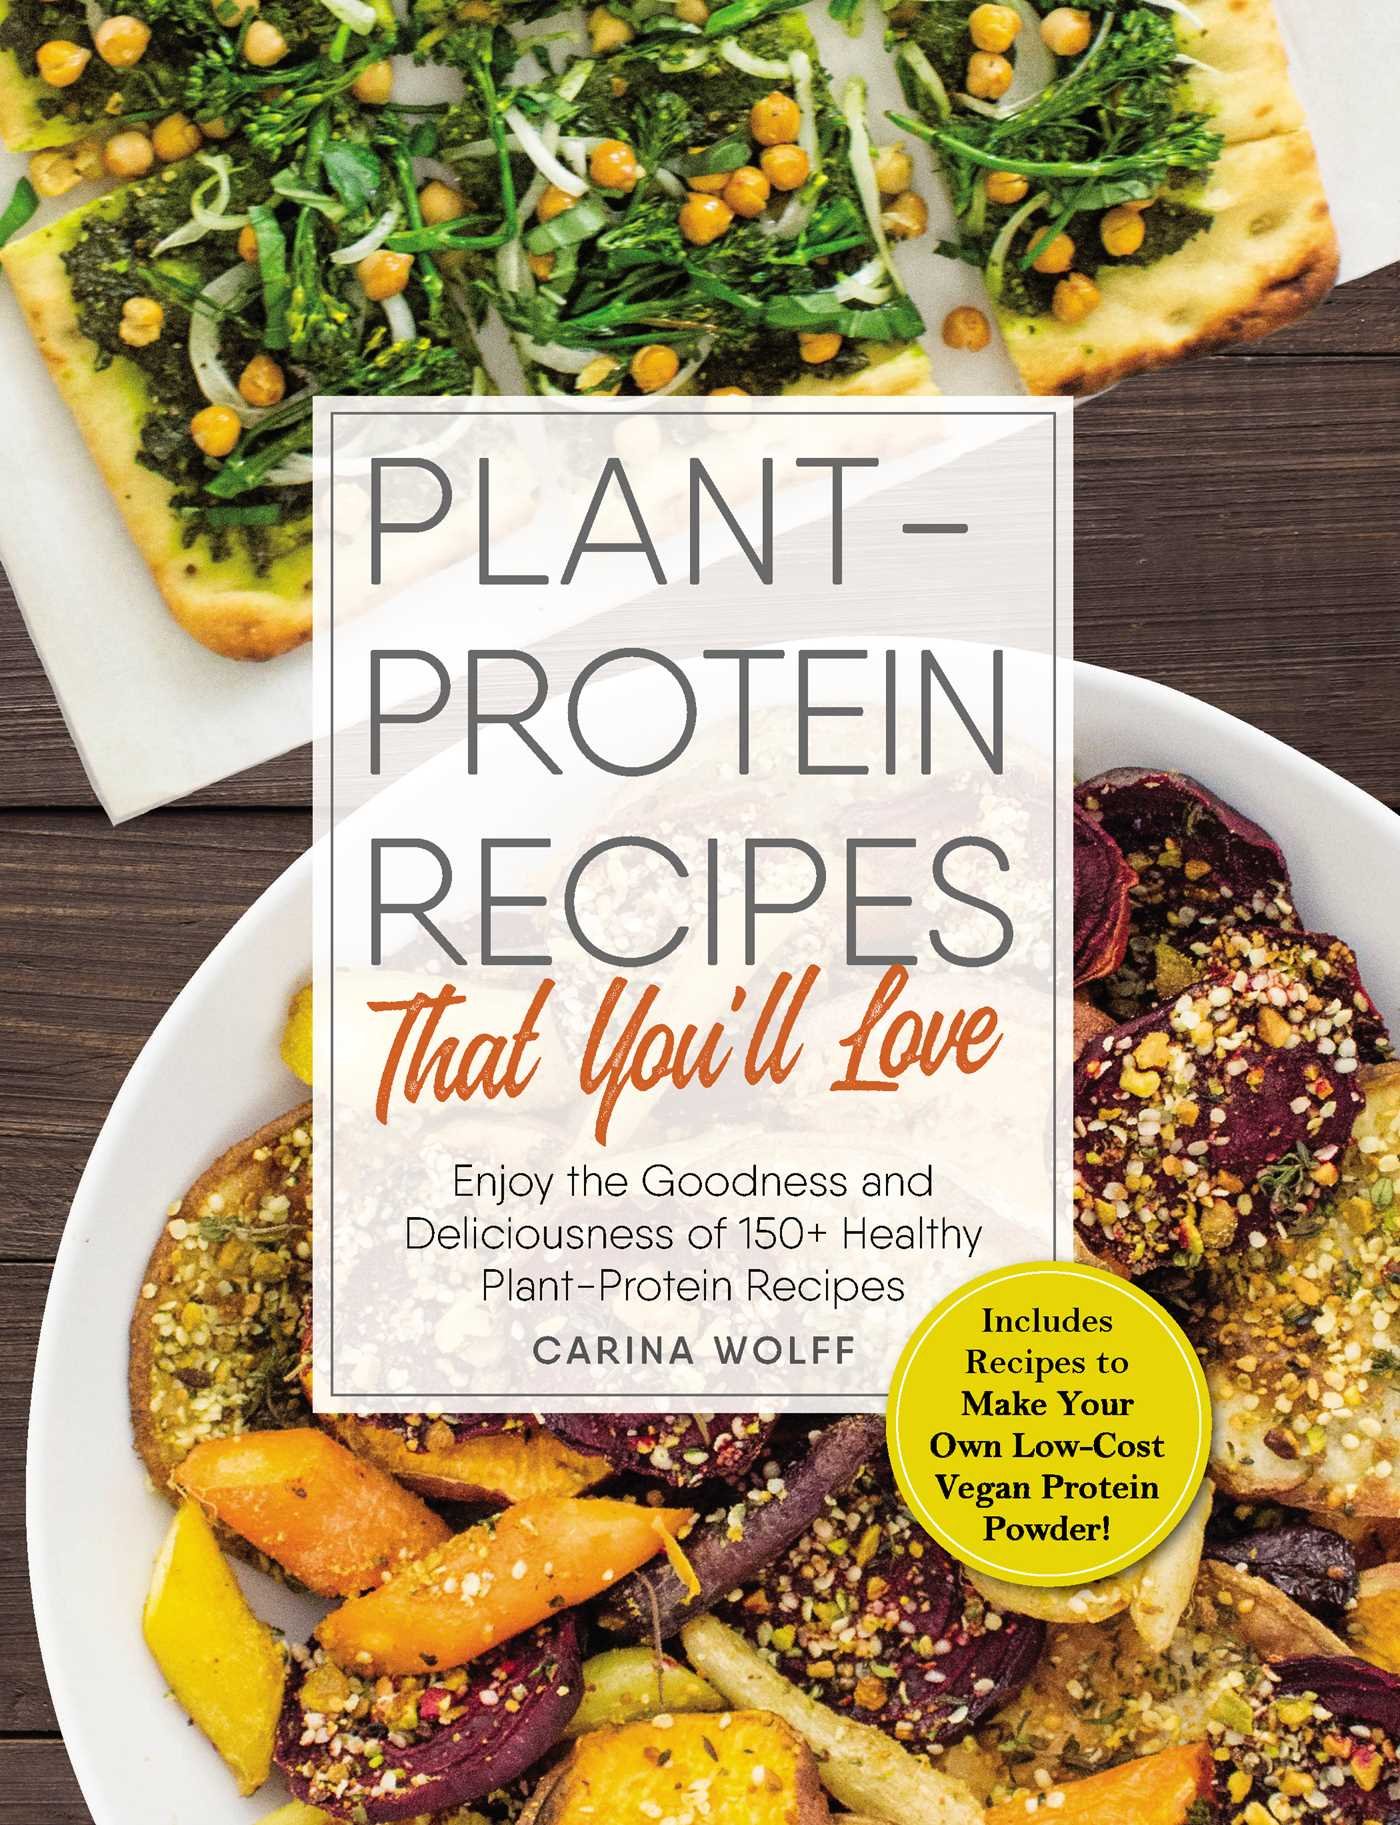 Plant protein recipes that youll love book by carina wolff book cover image jpg plant protein recipes that youll love forumfinder Gallery